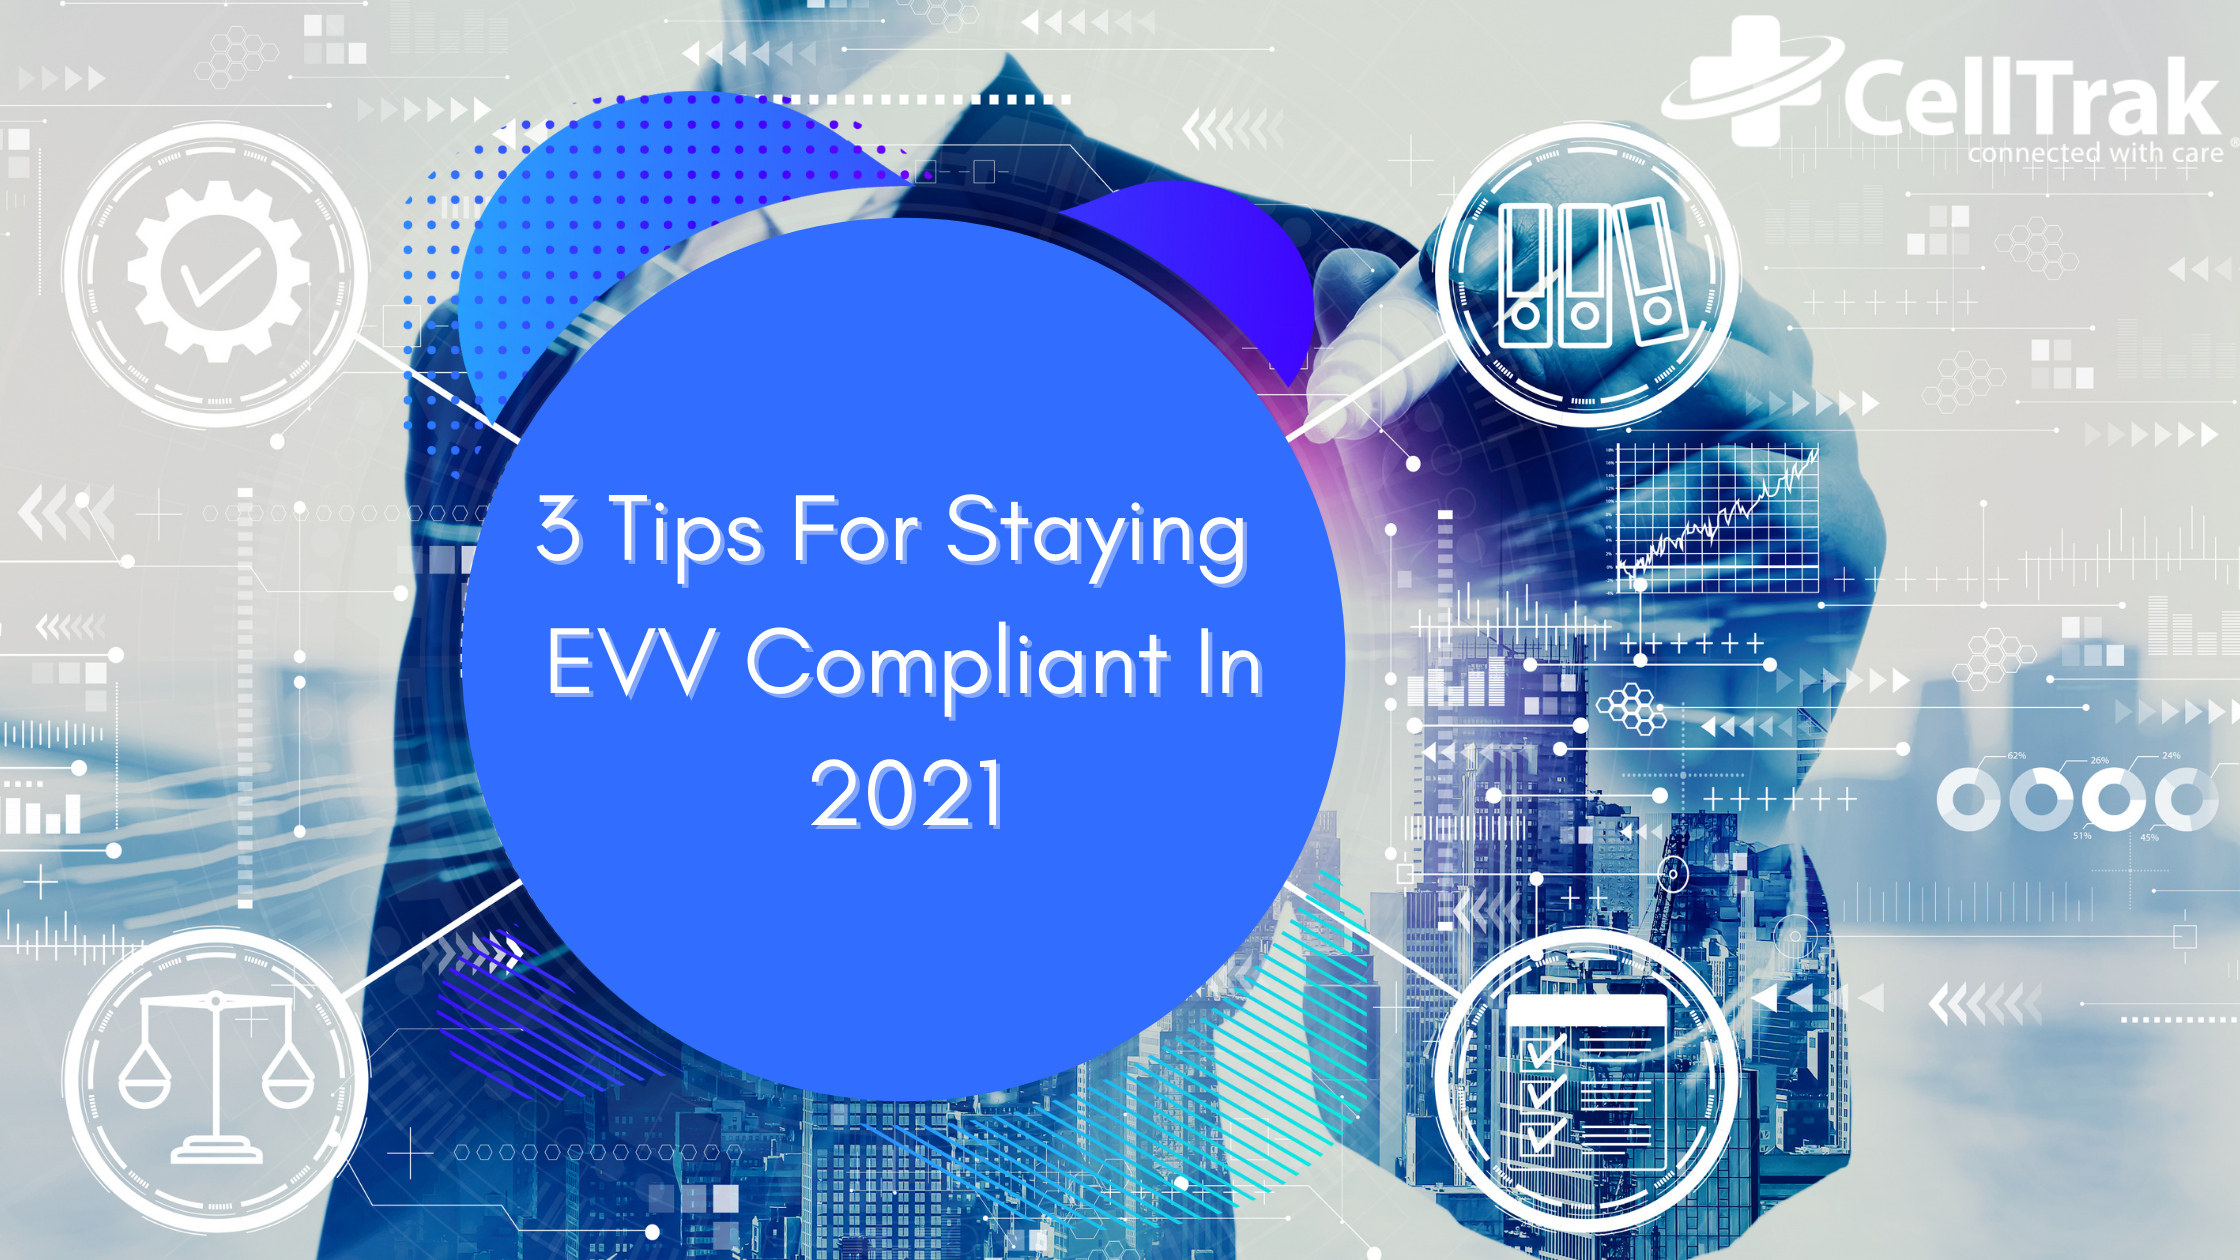 3 Tips for Staying EVV Compliant in 2021